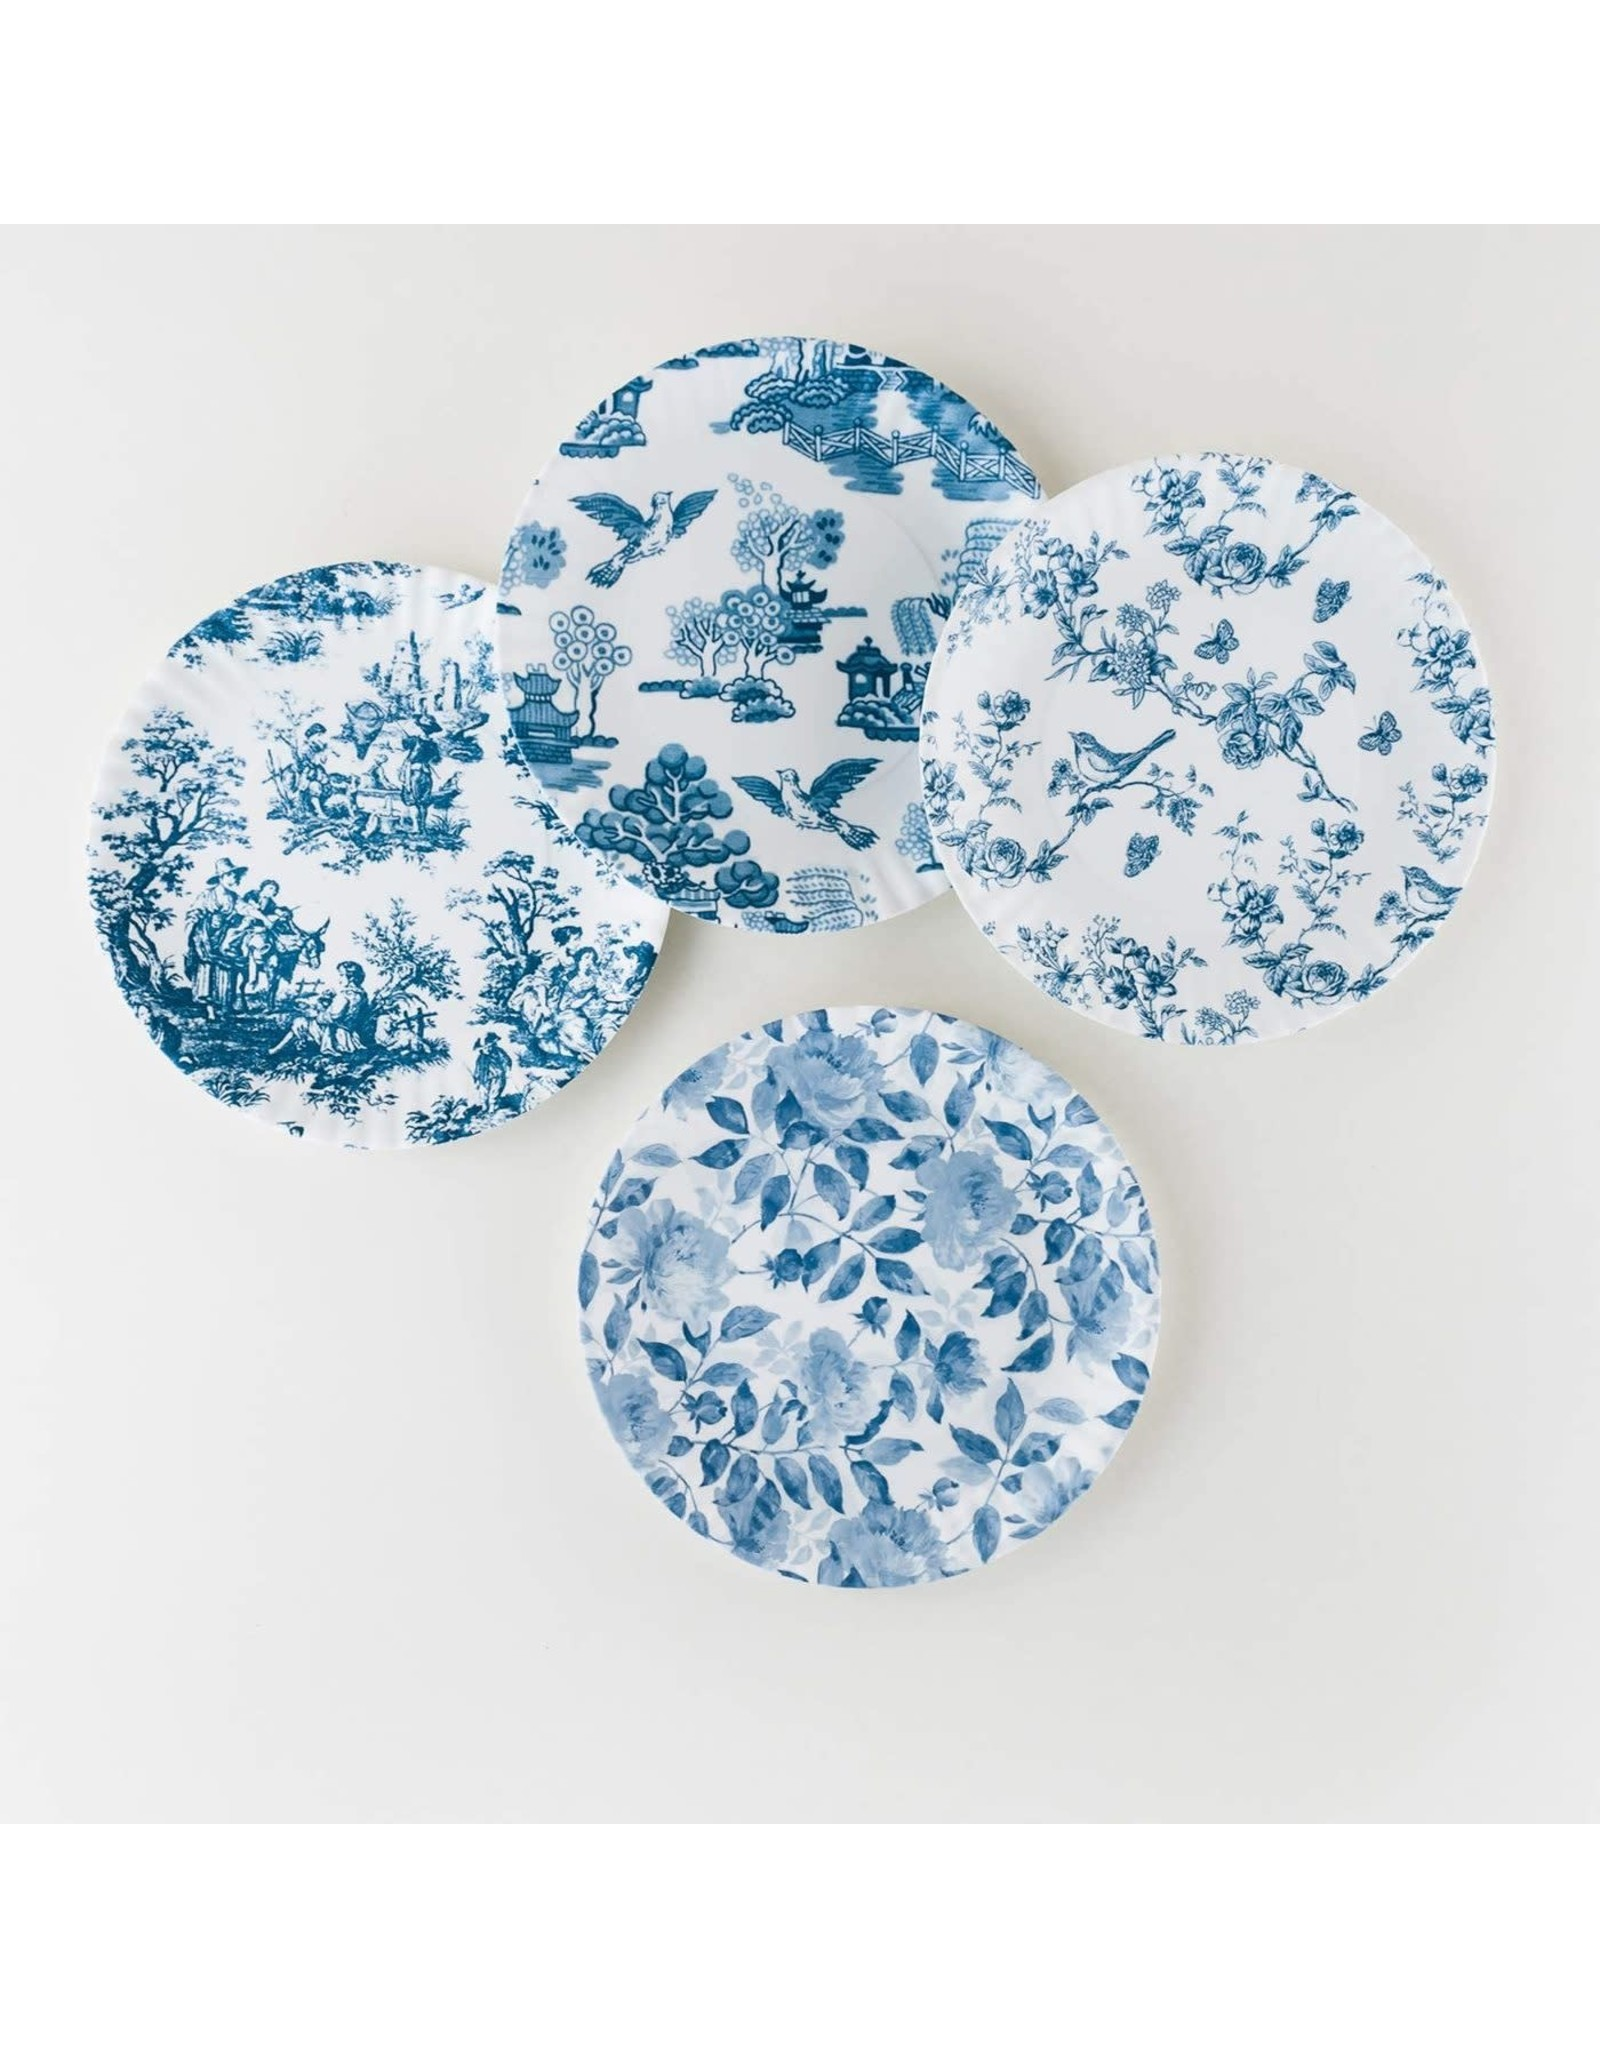 Oak + Arrow Interiors Pictorial Blue & White Plates - Set of 4